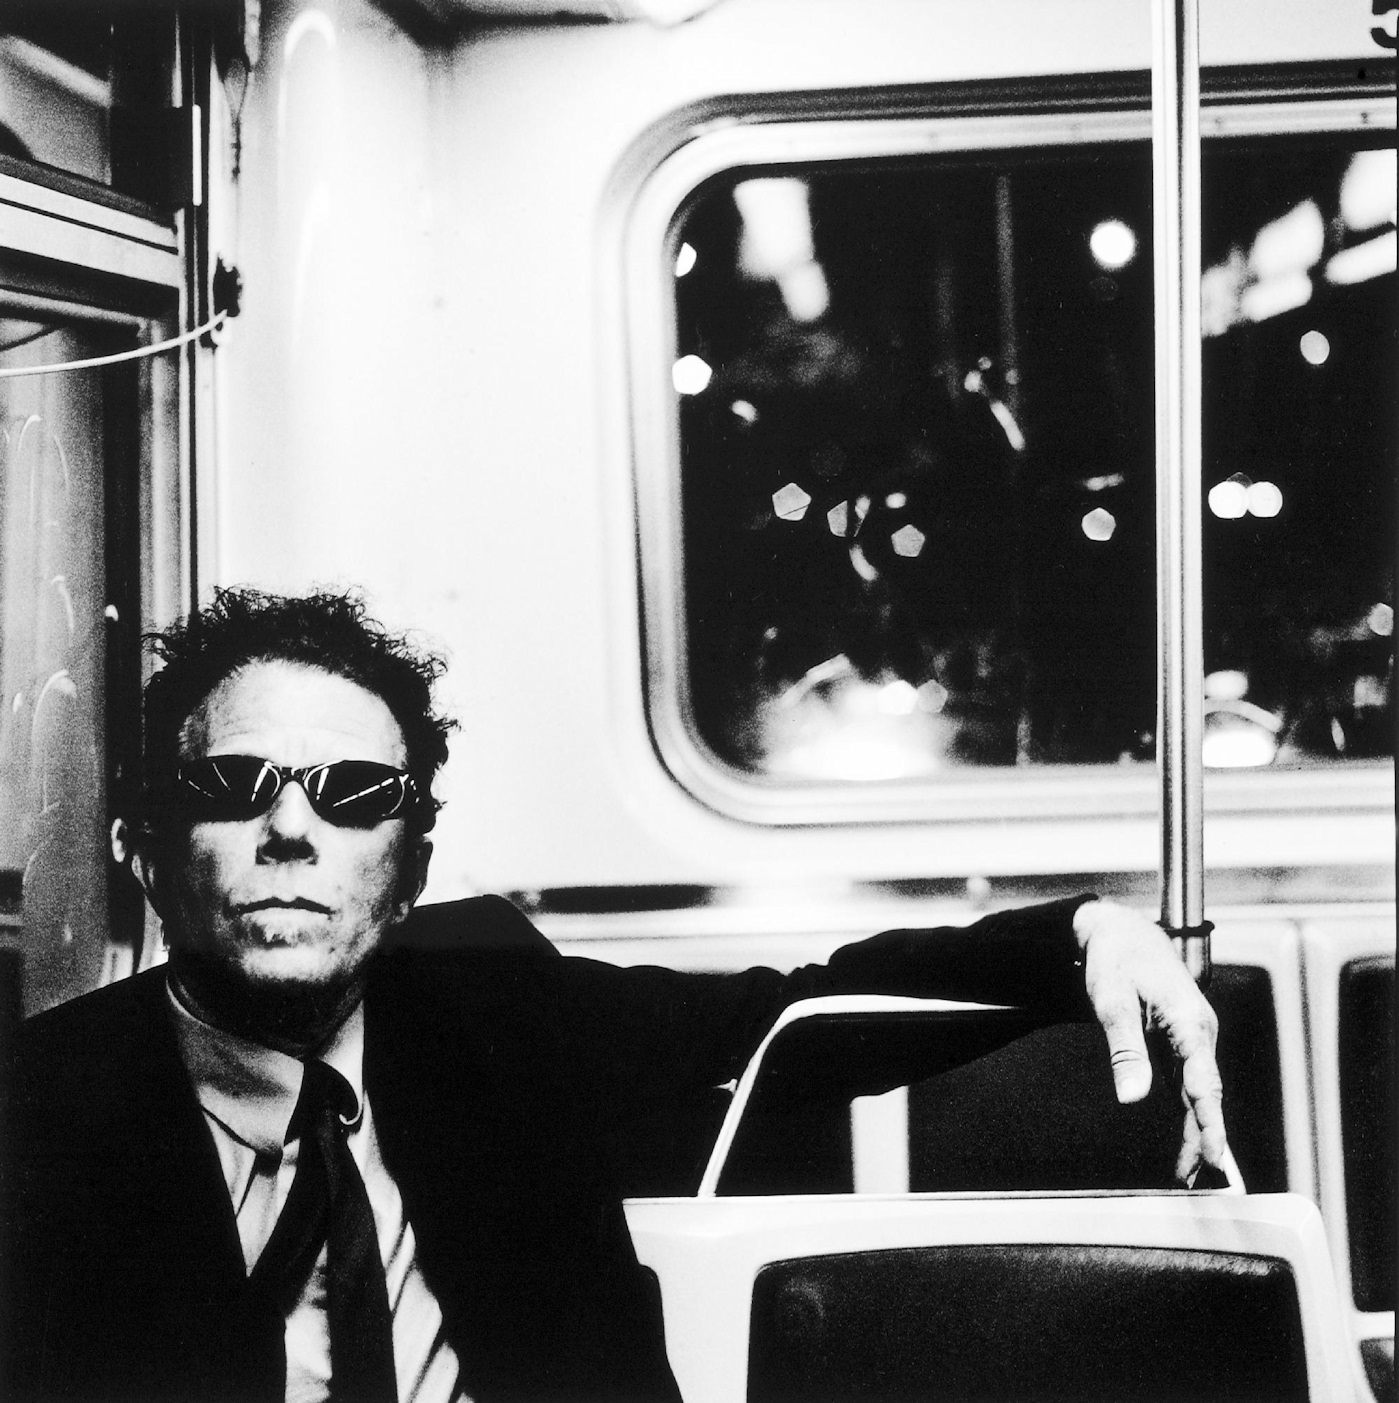 Black gloves young buck lyrics - Tom Waits Lyrics Part 1 Photos Pictures Paroles Letras Text For Every Songs